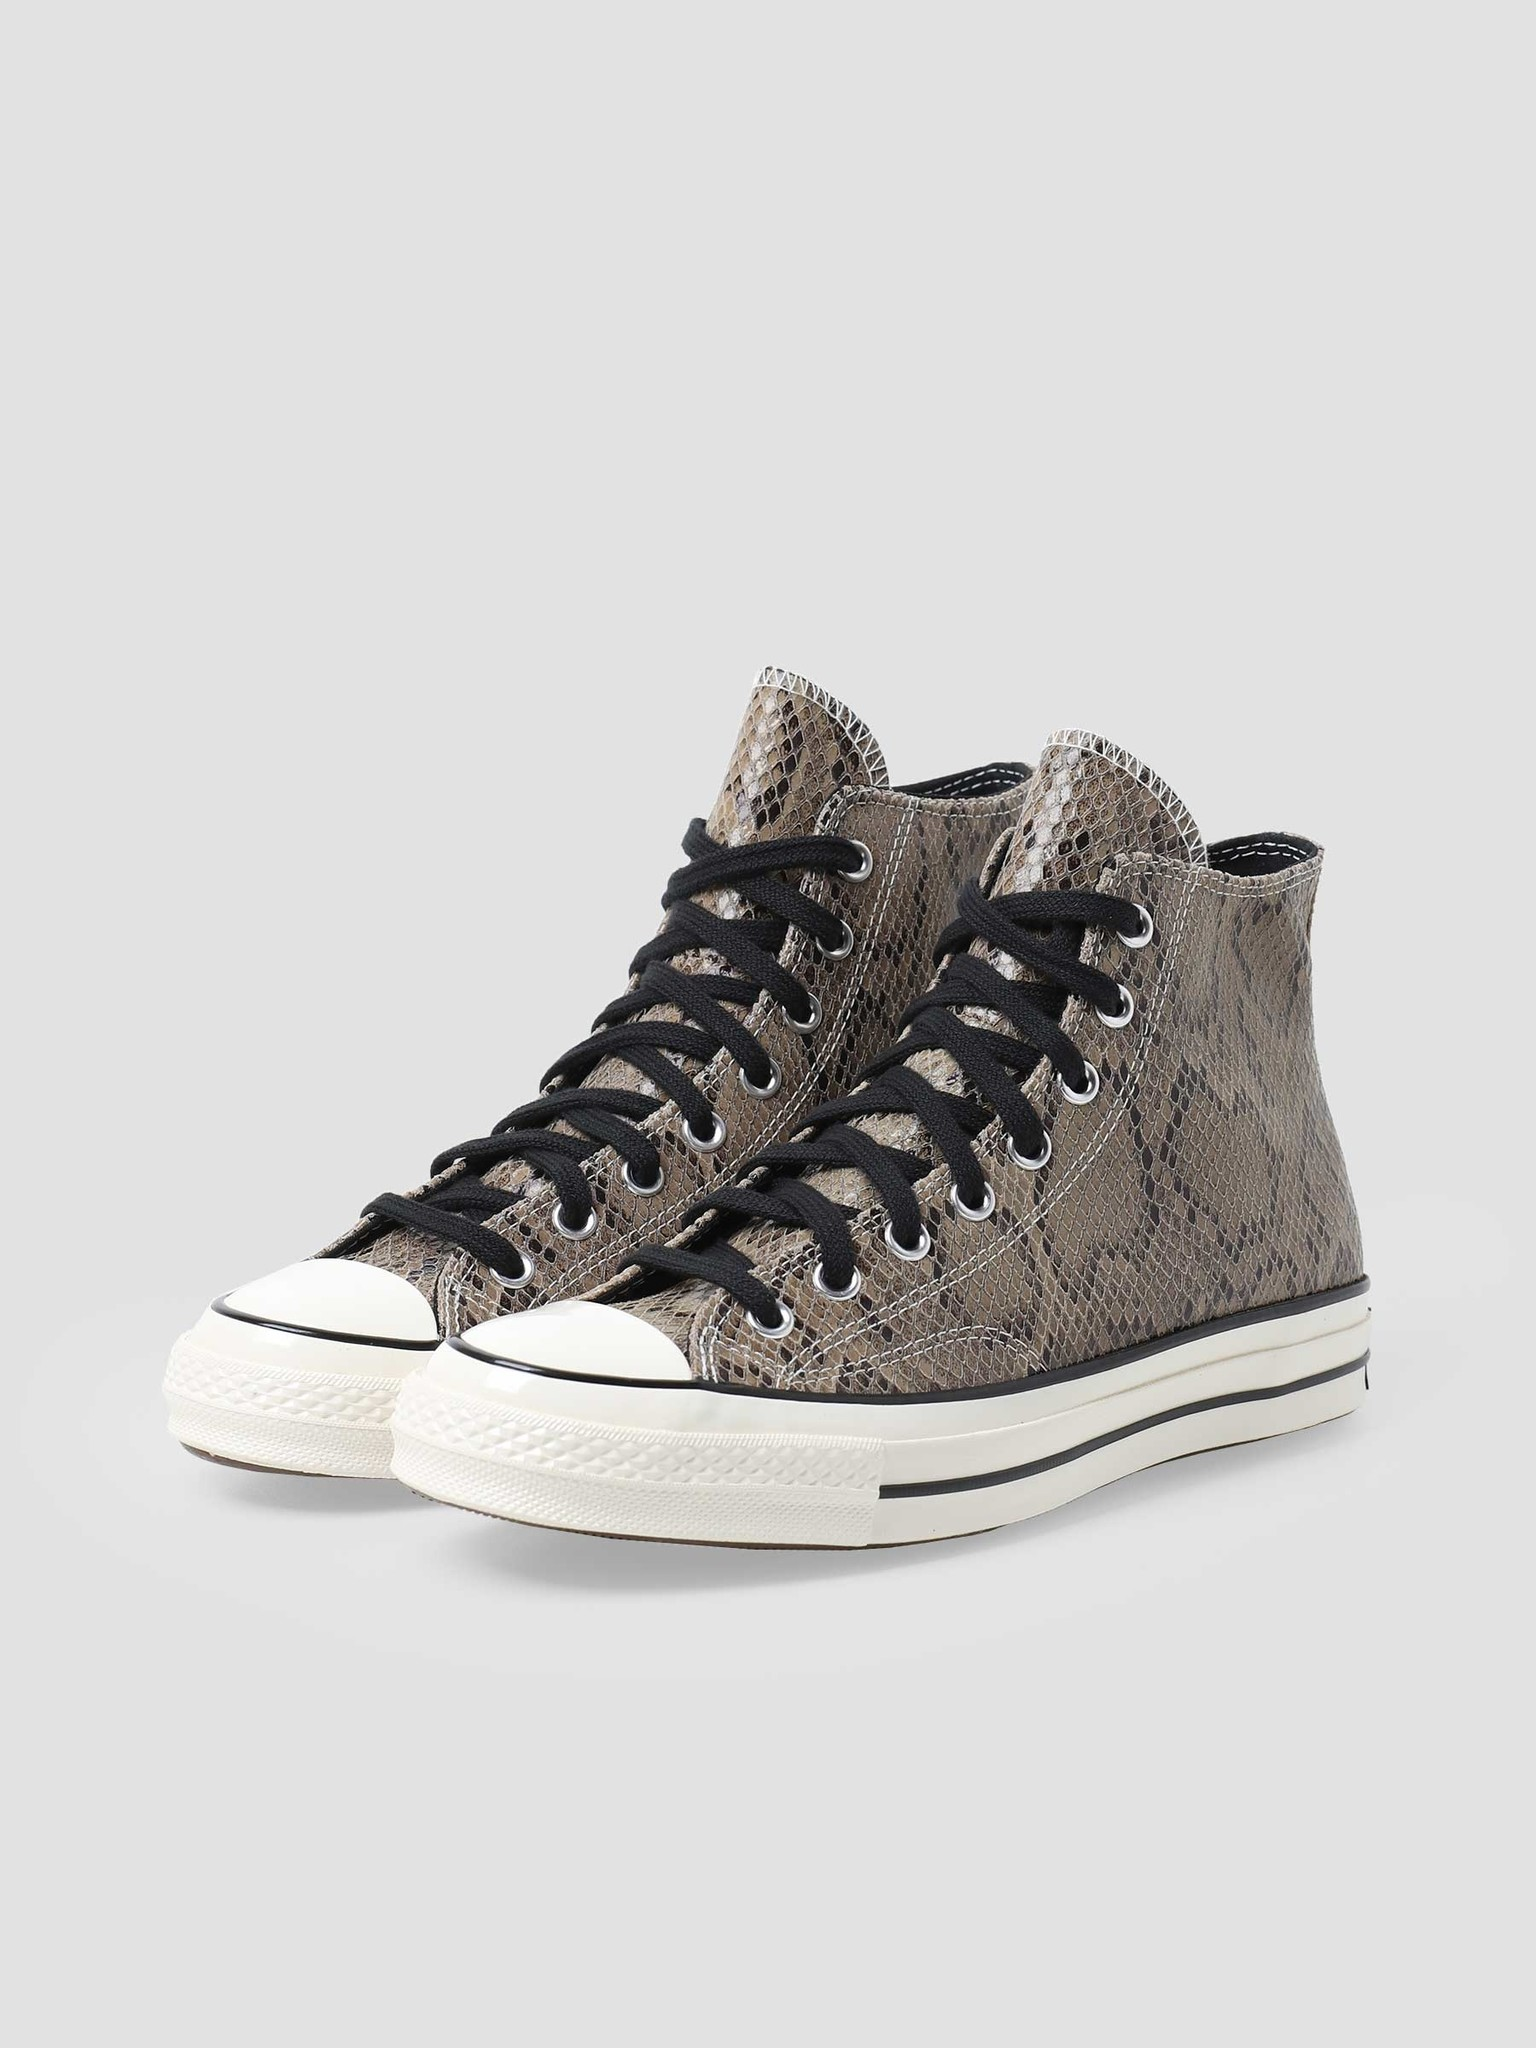 Converse Converse Chuck 70 HI Chocolate Brown Leather 170103C